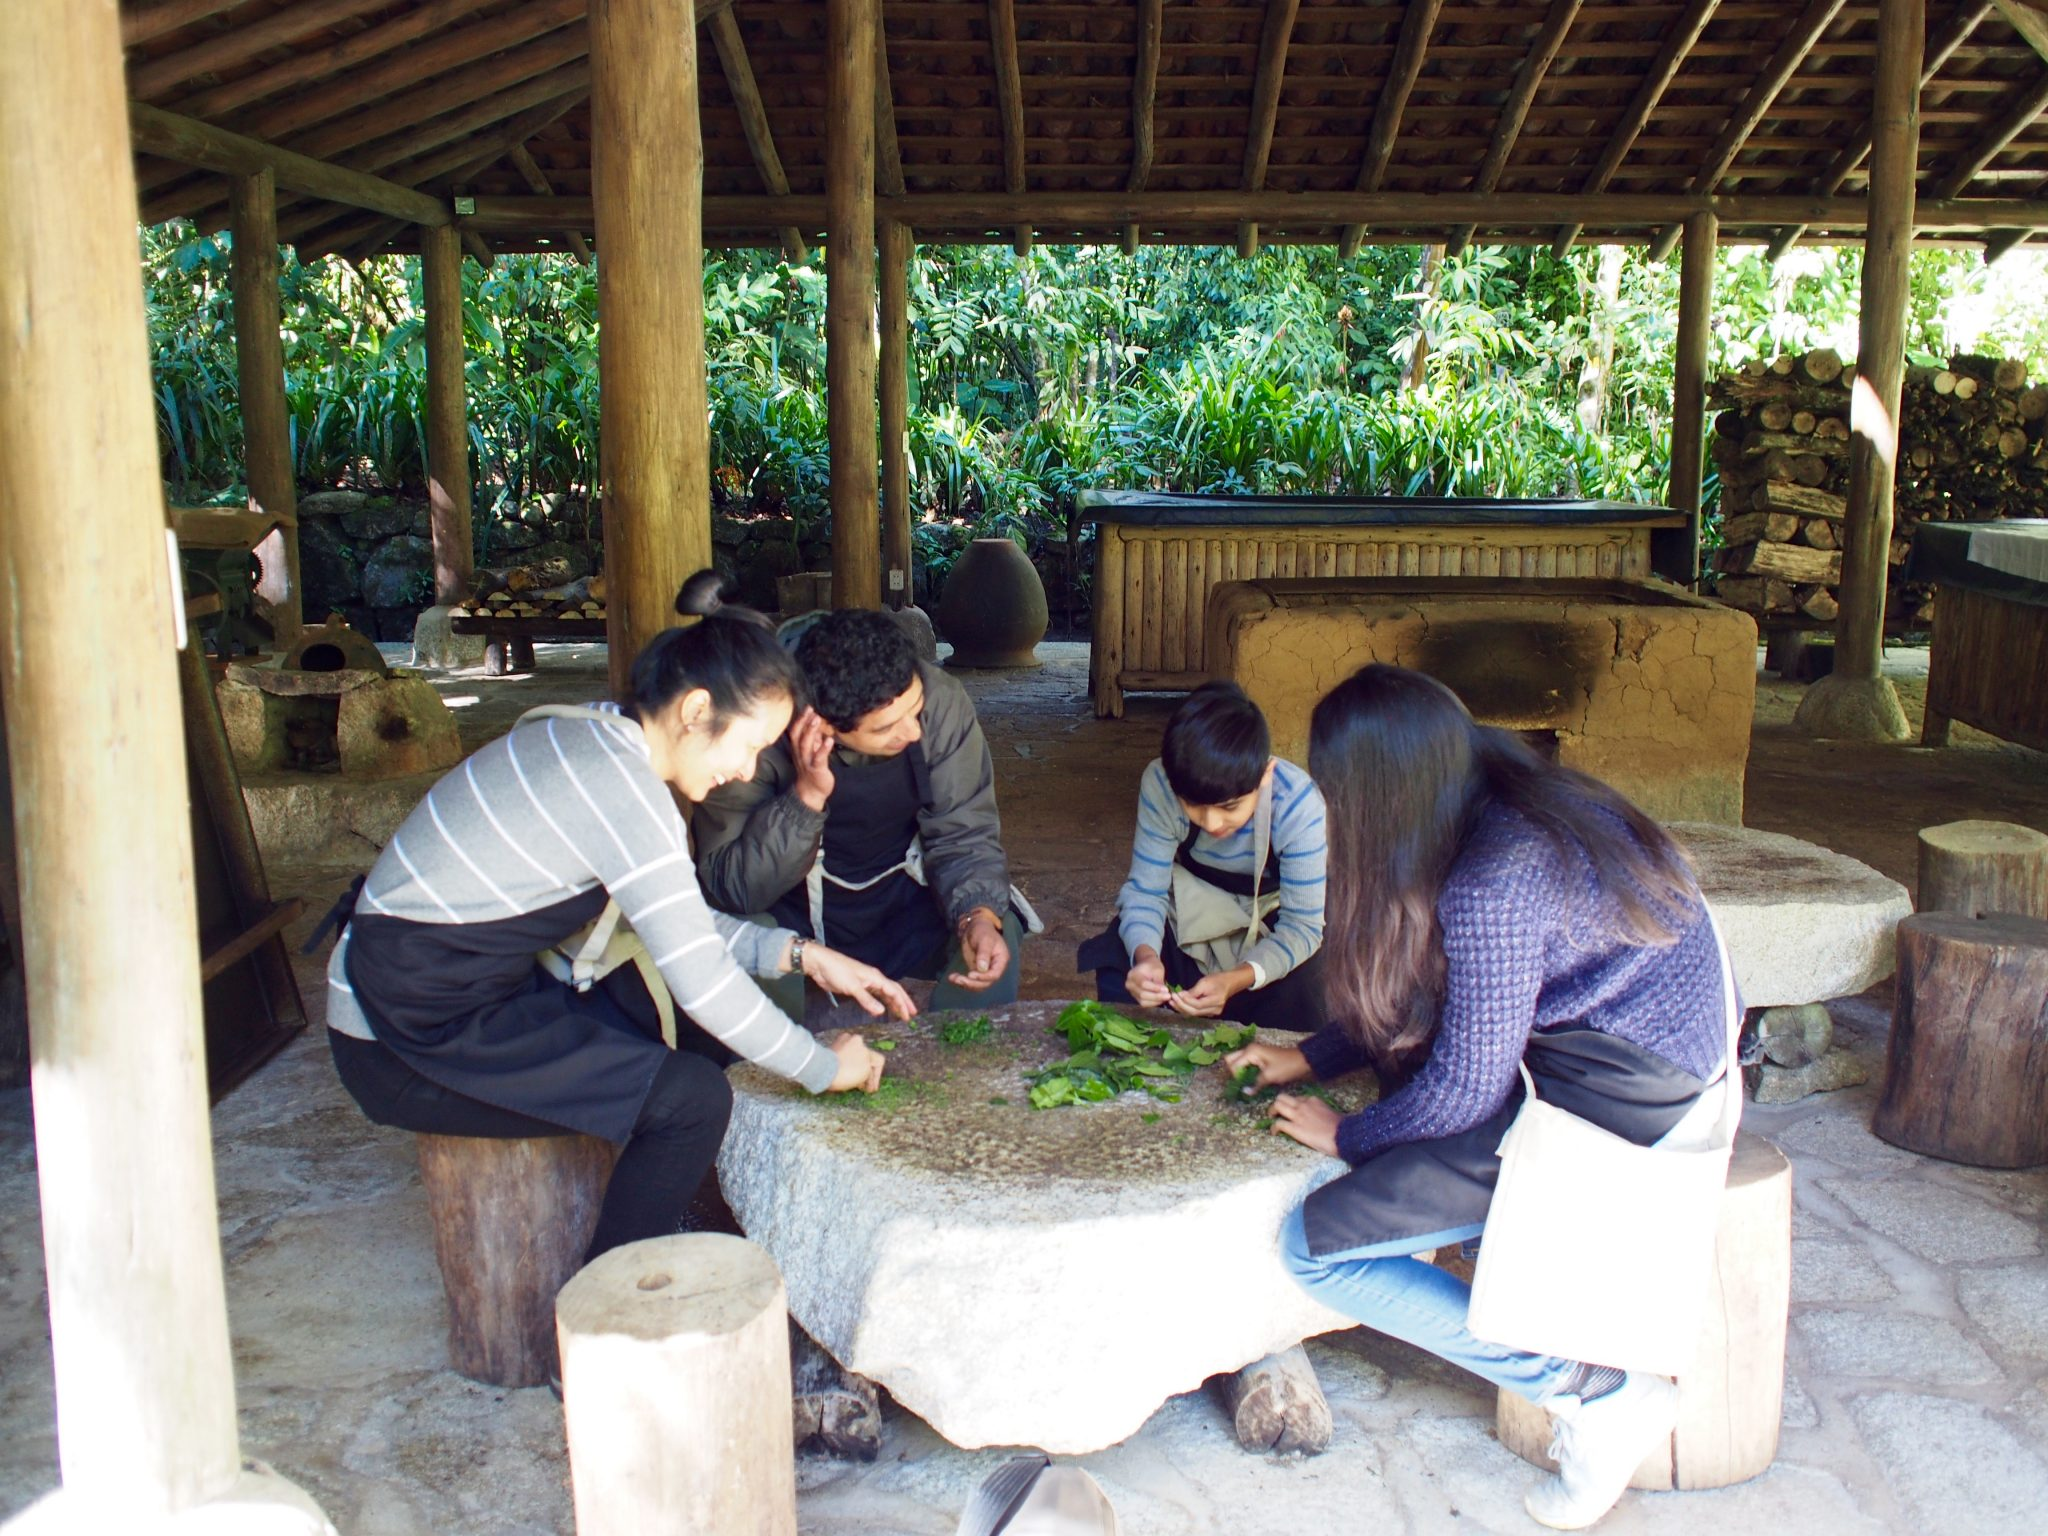 Karen and her children learning to process tea leaves at Inkaterra Machu Picchu Pueblo Hotel.